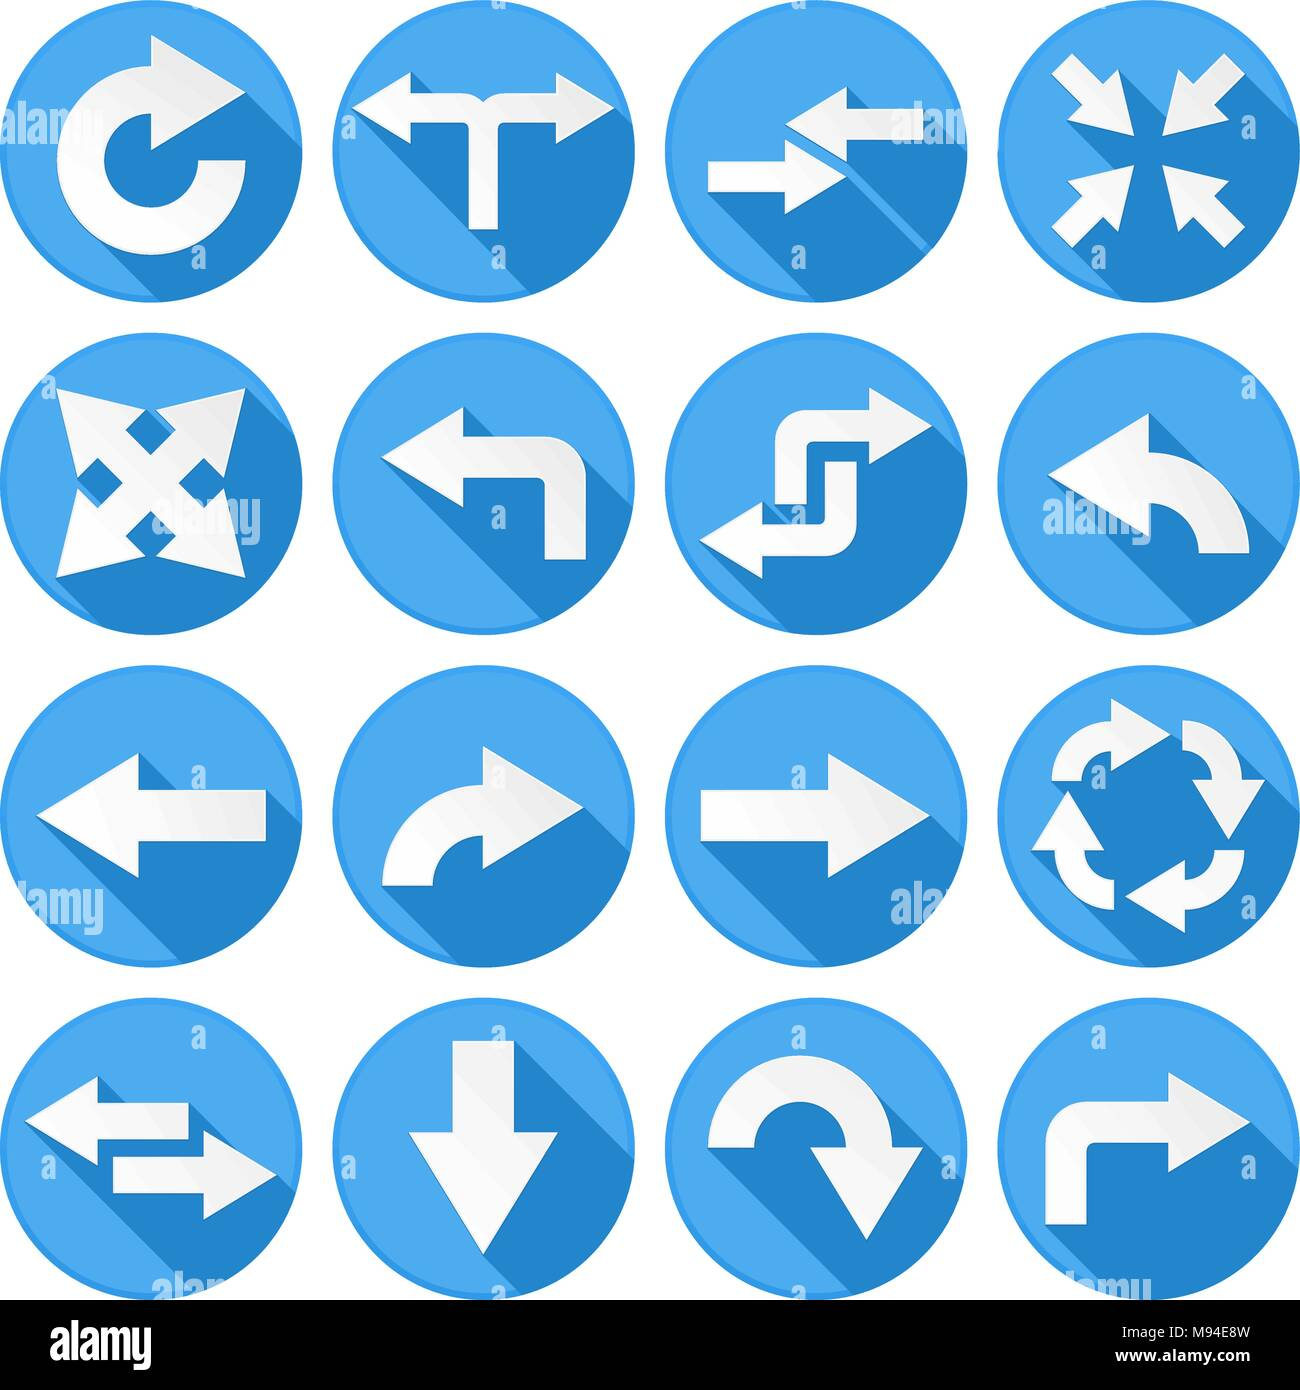 Arrows Set Collection Of Round Blue Icons With Arrow Symbols Stock